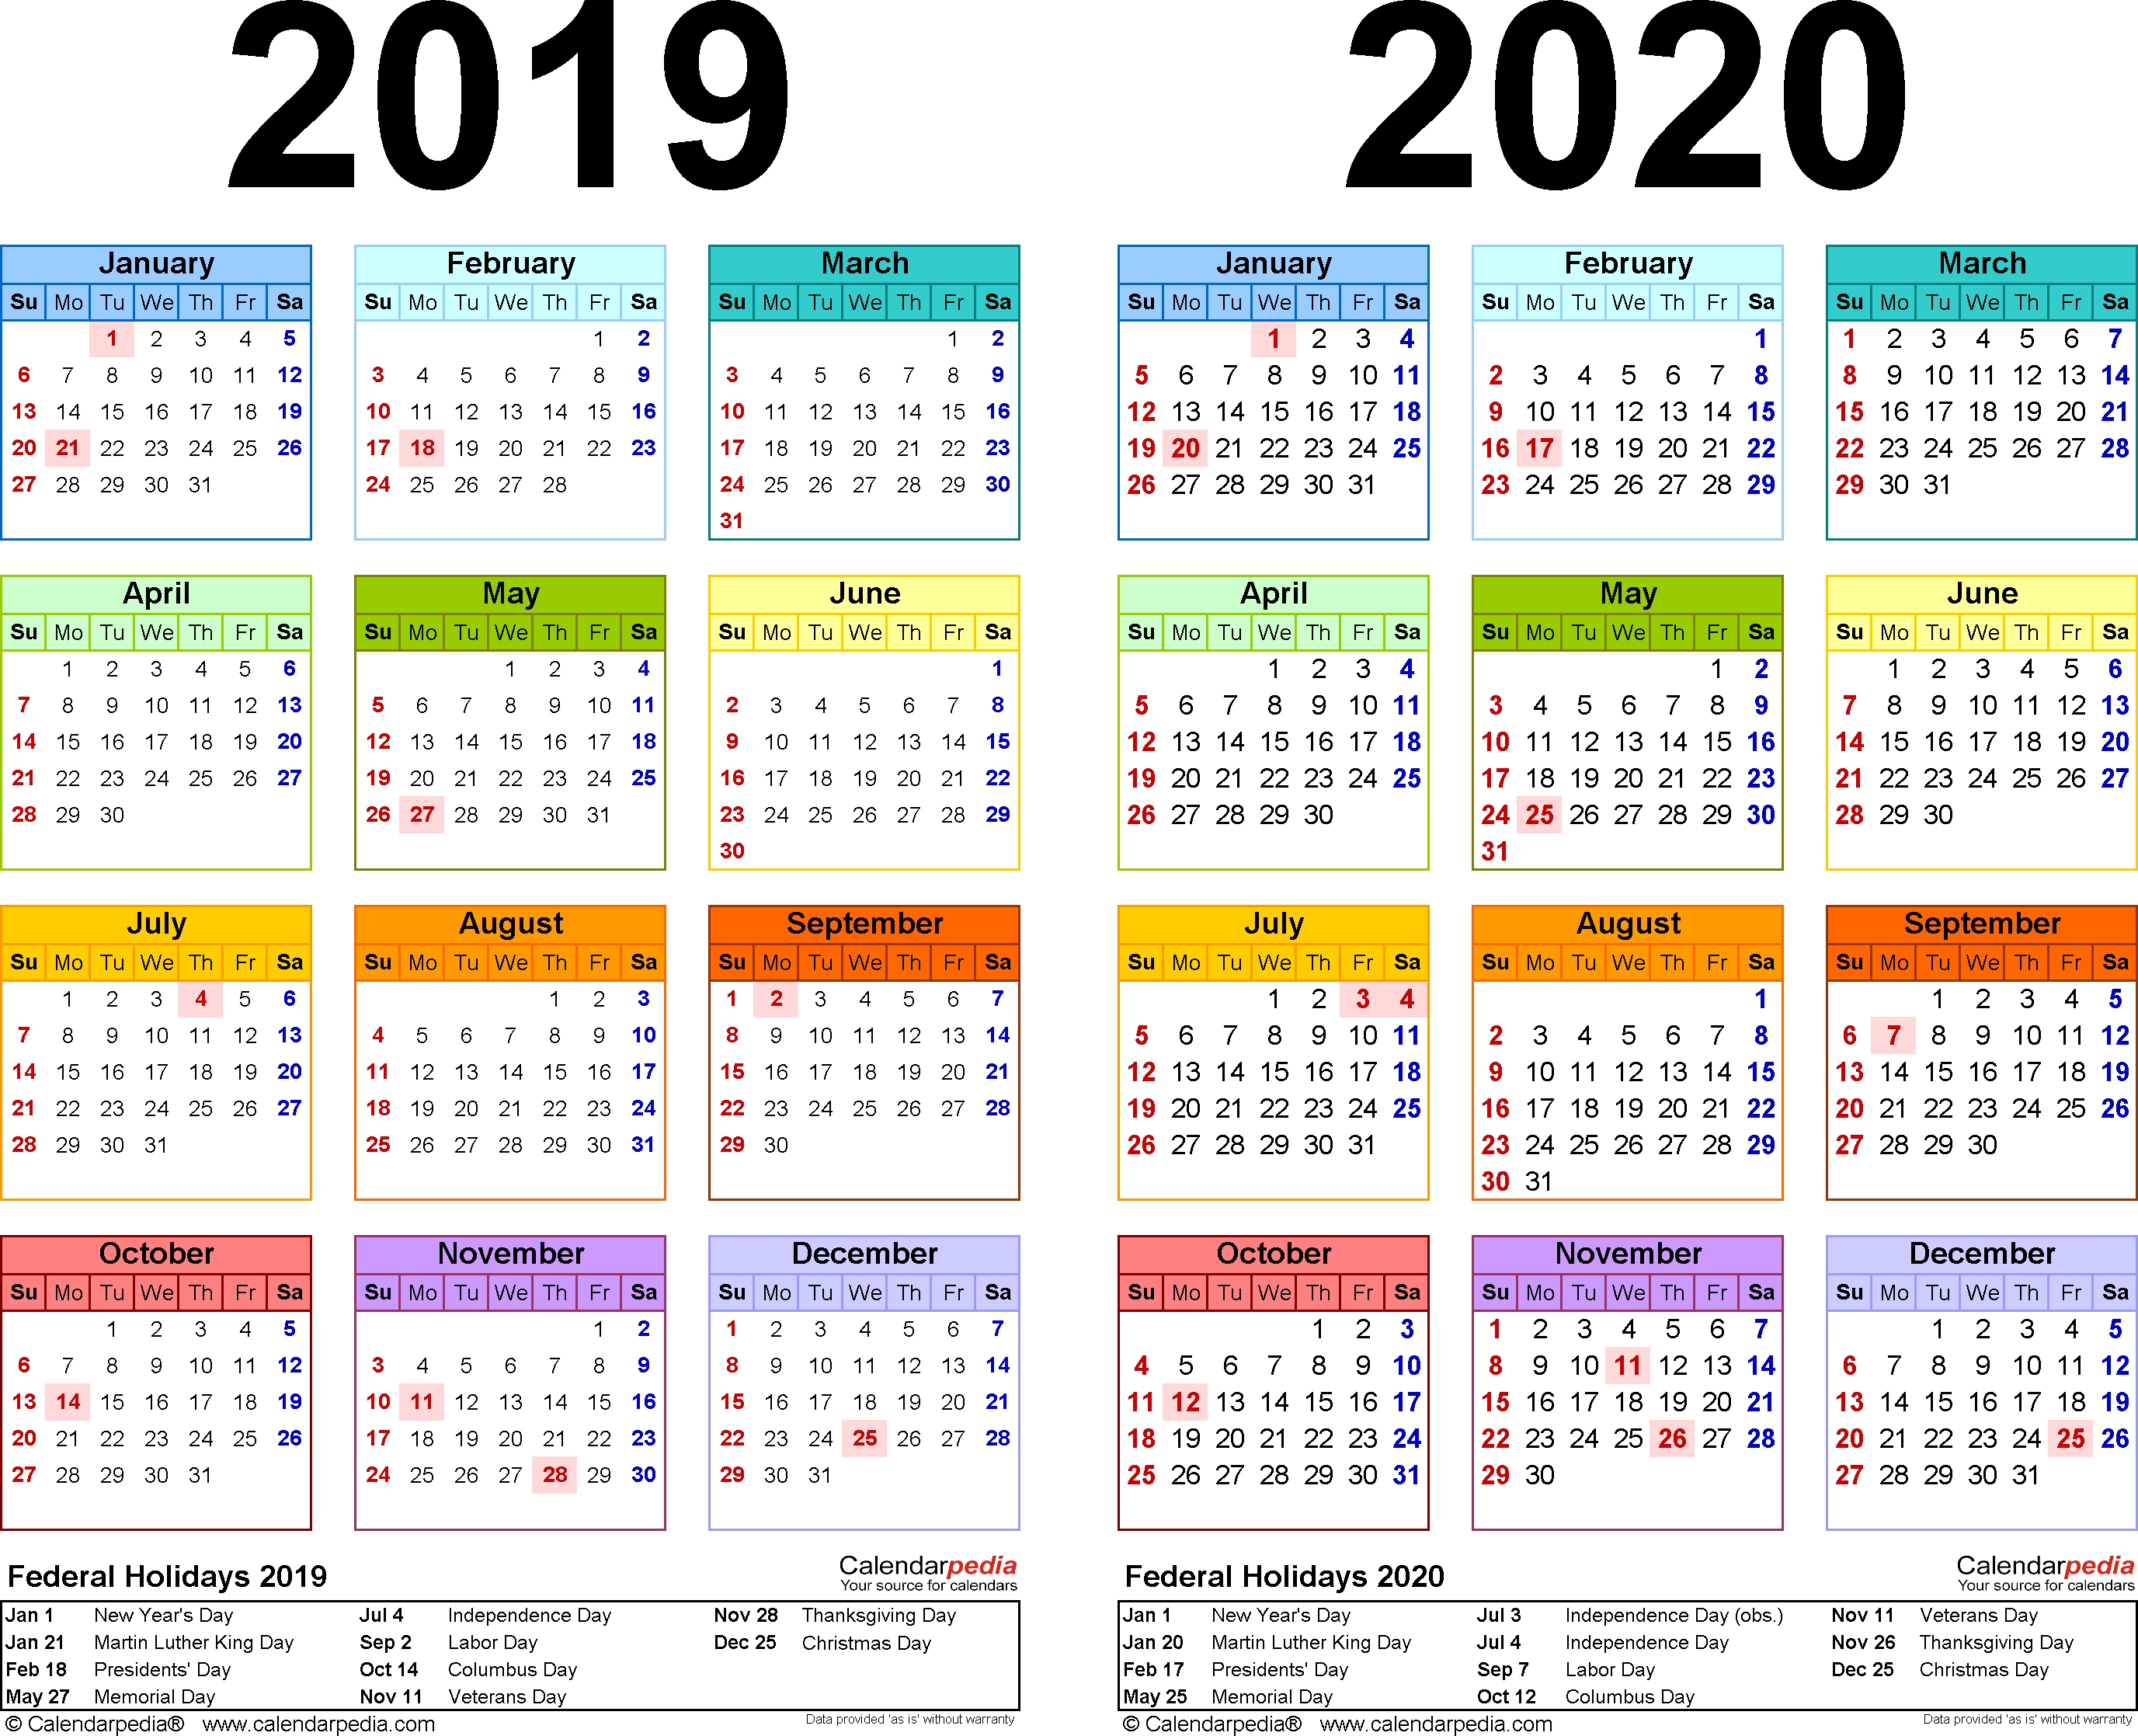 2019-2020 Calendar - Free Printable Two-Year Word Calendars within Free Fillable Printable 2019 2020 Calendar